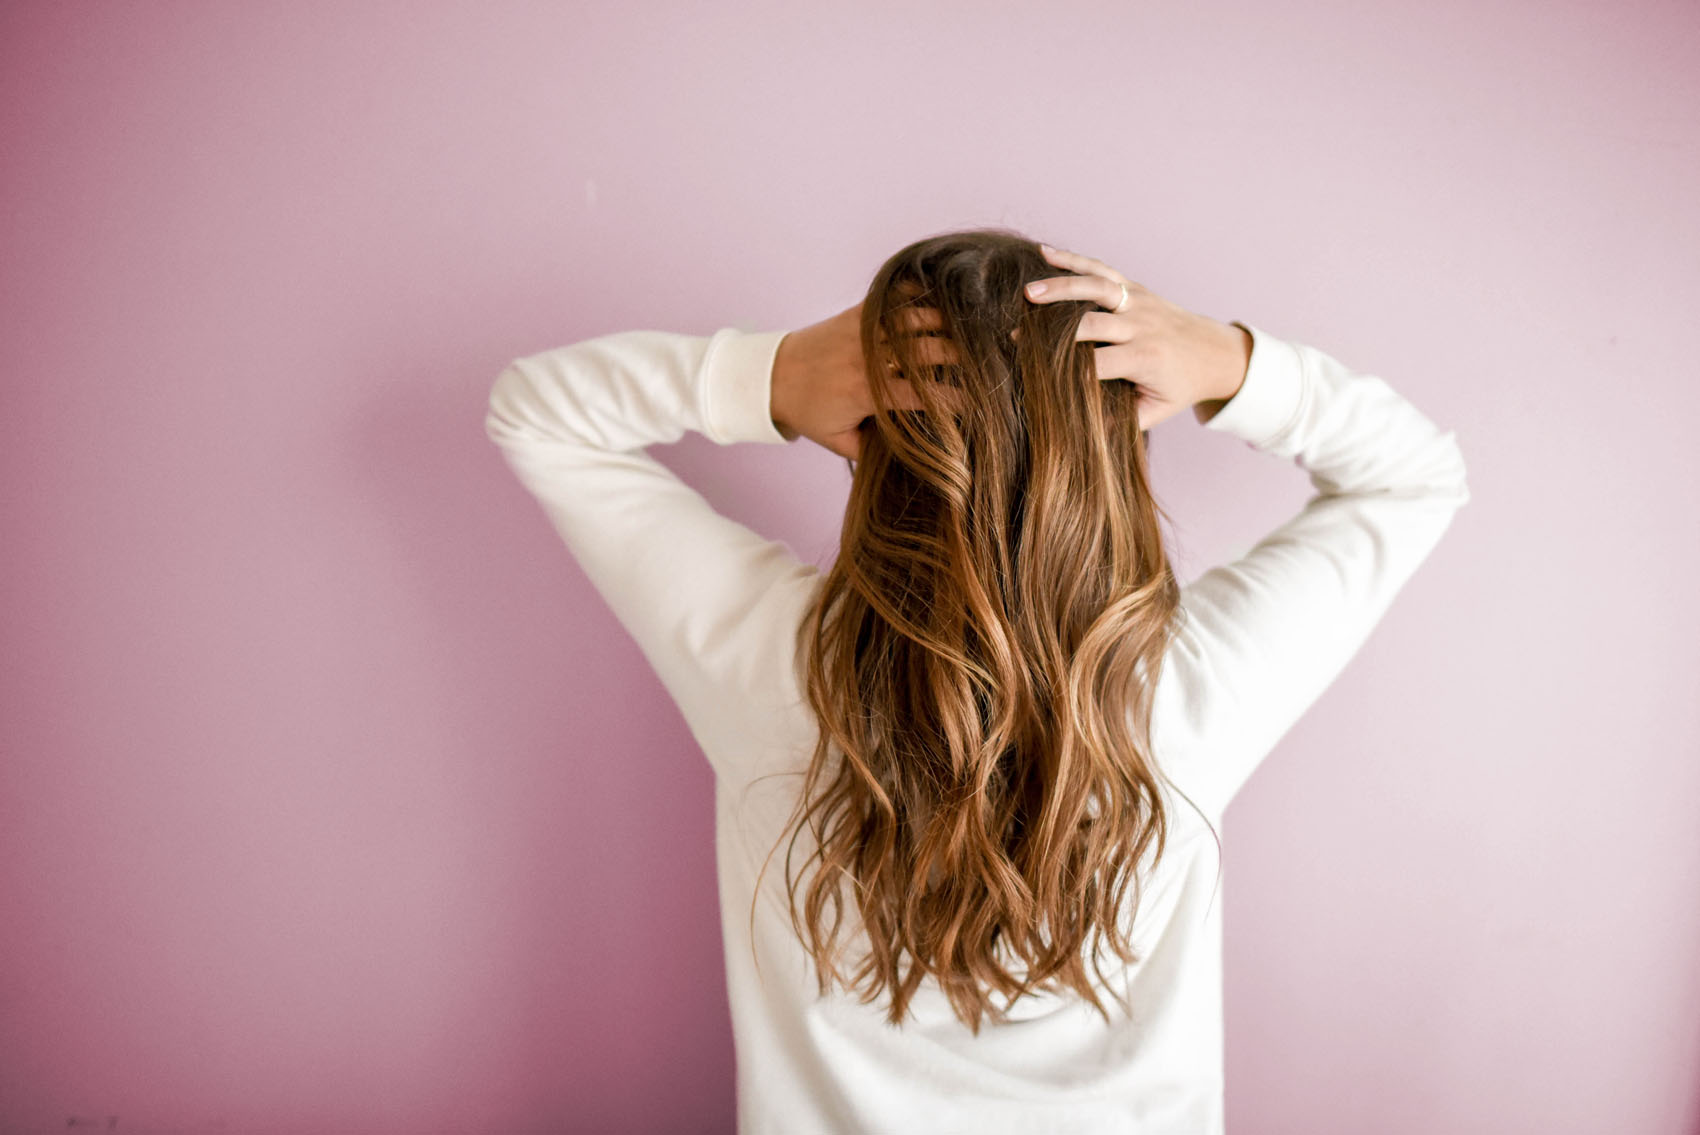 Winter Natural Hair Care 4 Must Know Home Remedies For All Hair Types Winter Natural Hair Care 4 Must Know Home Remedies For All Hair Types